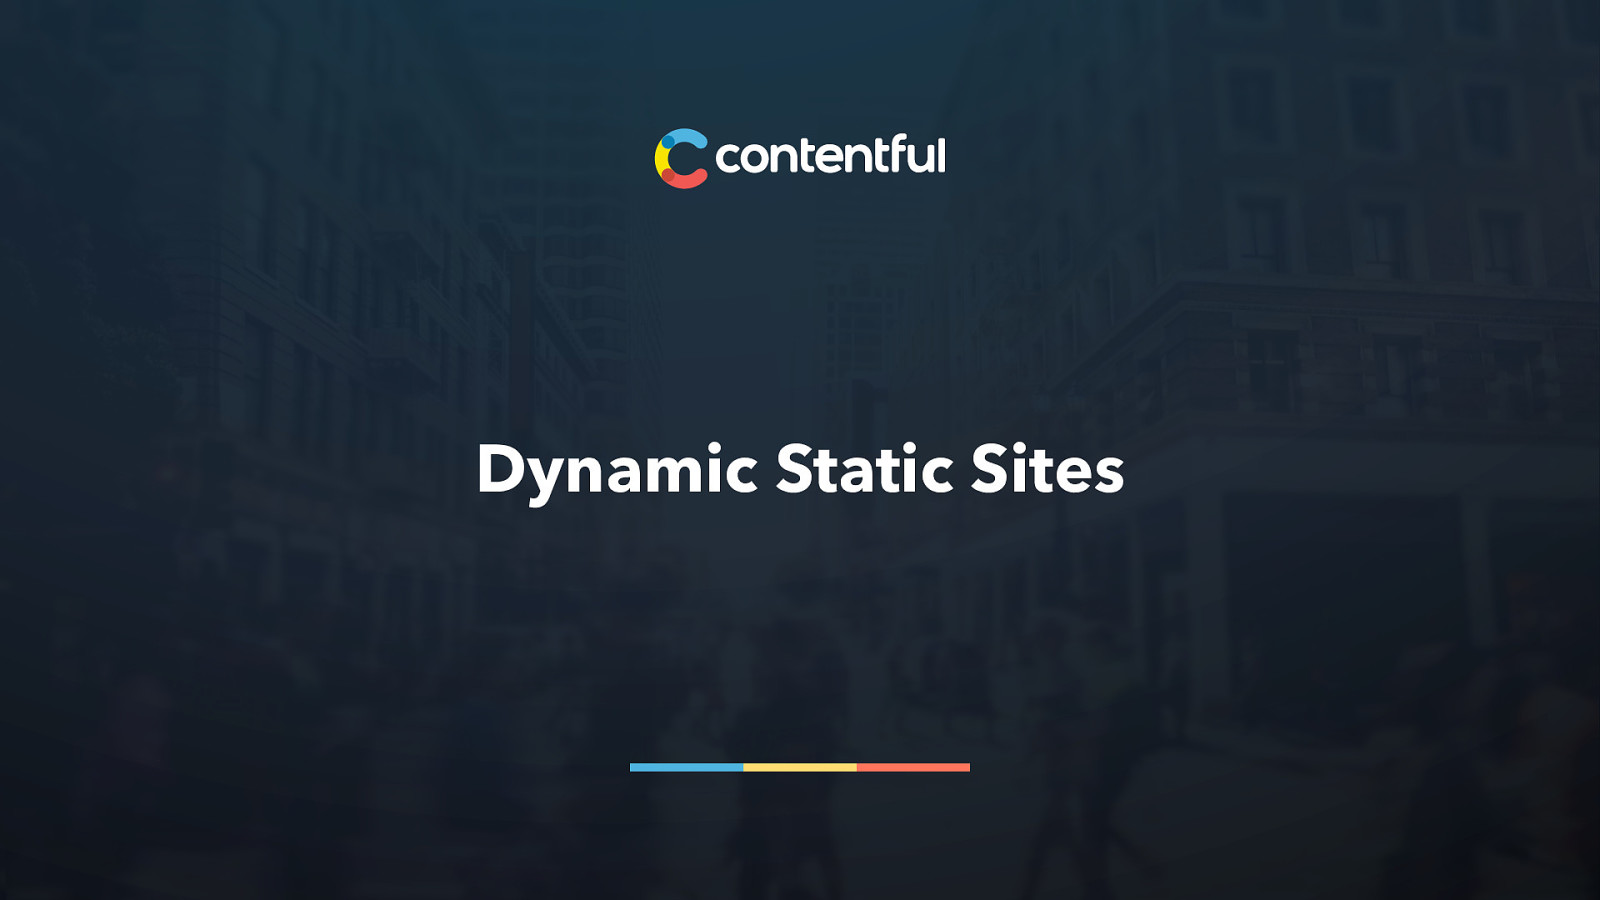 Dynamic Static Sites